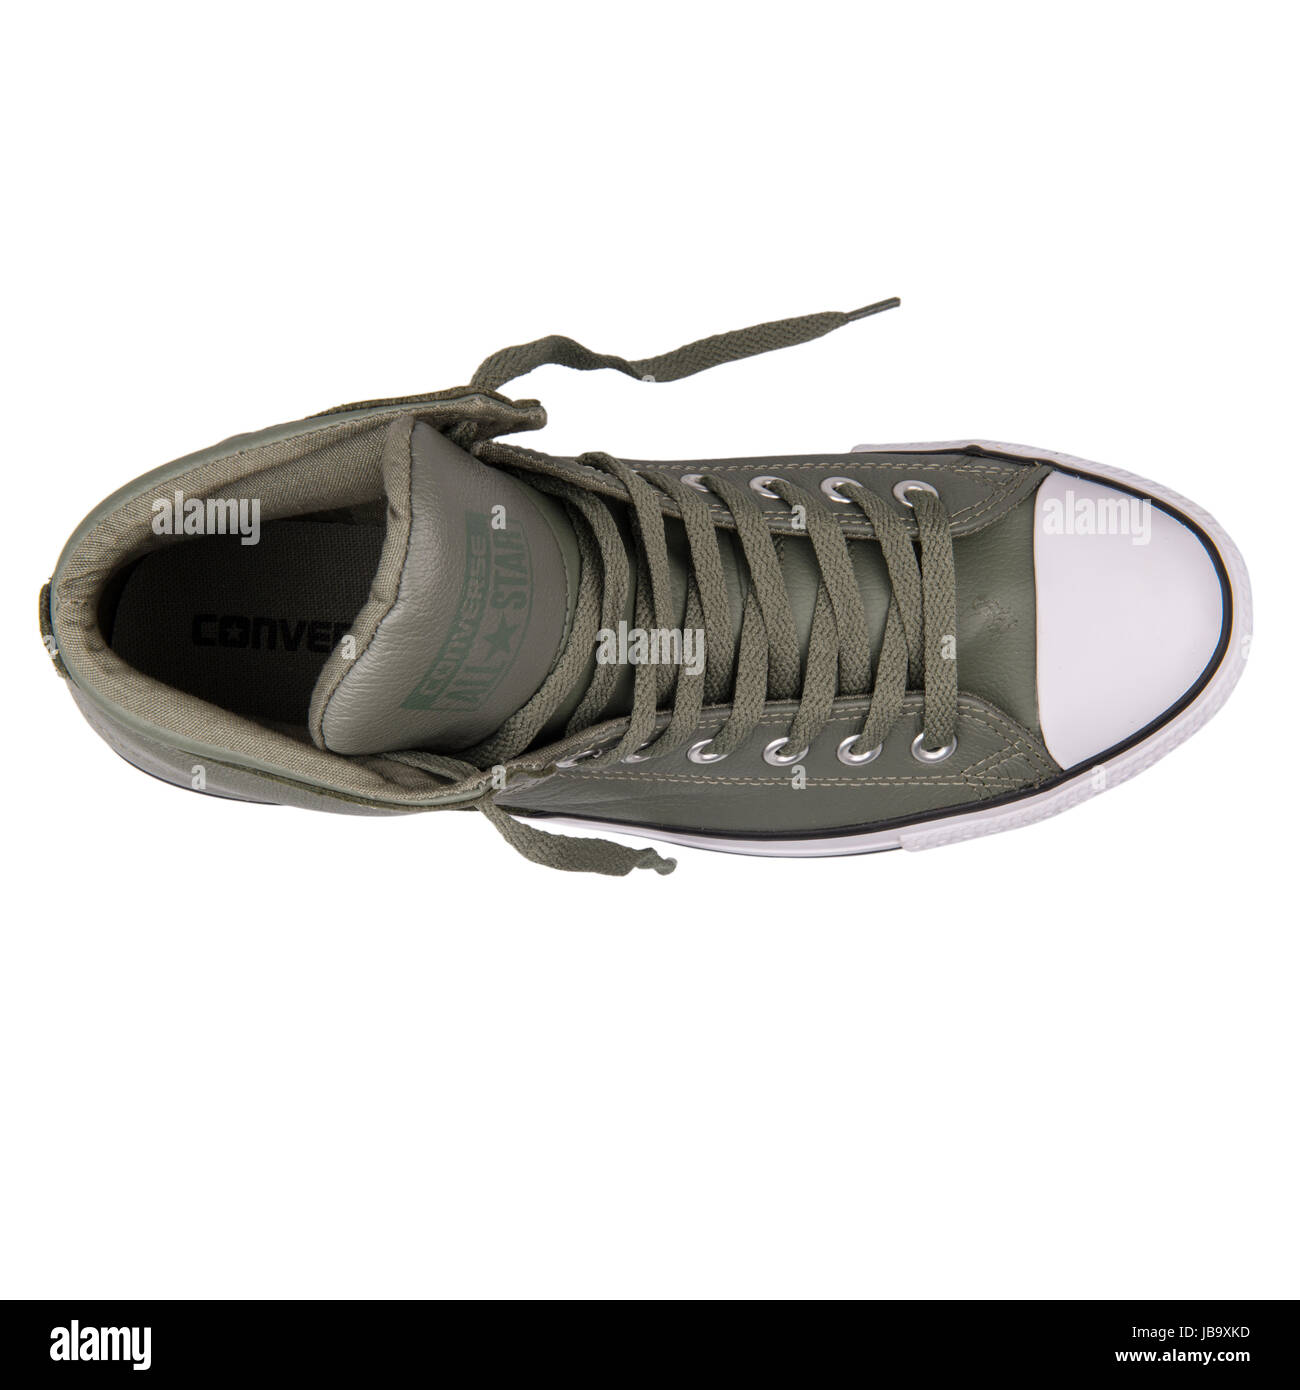 1995e3254d8 Converse Chuck Taylor All Star High Street Olive Submarine Unisex Shoes -  149427C - Stock Image